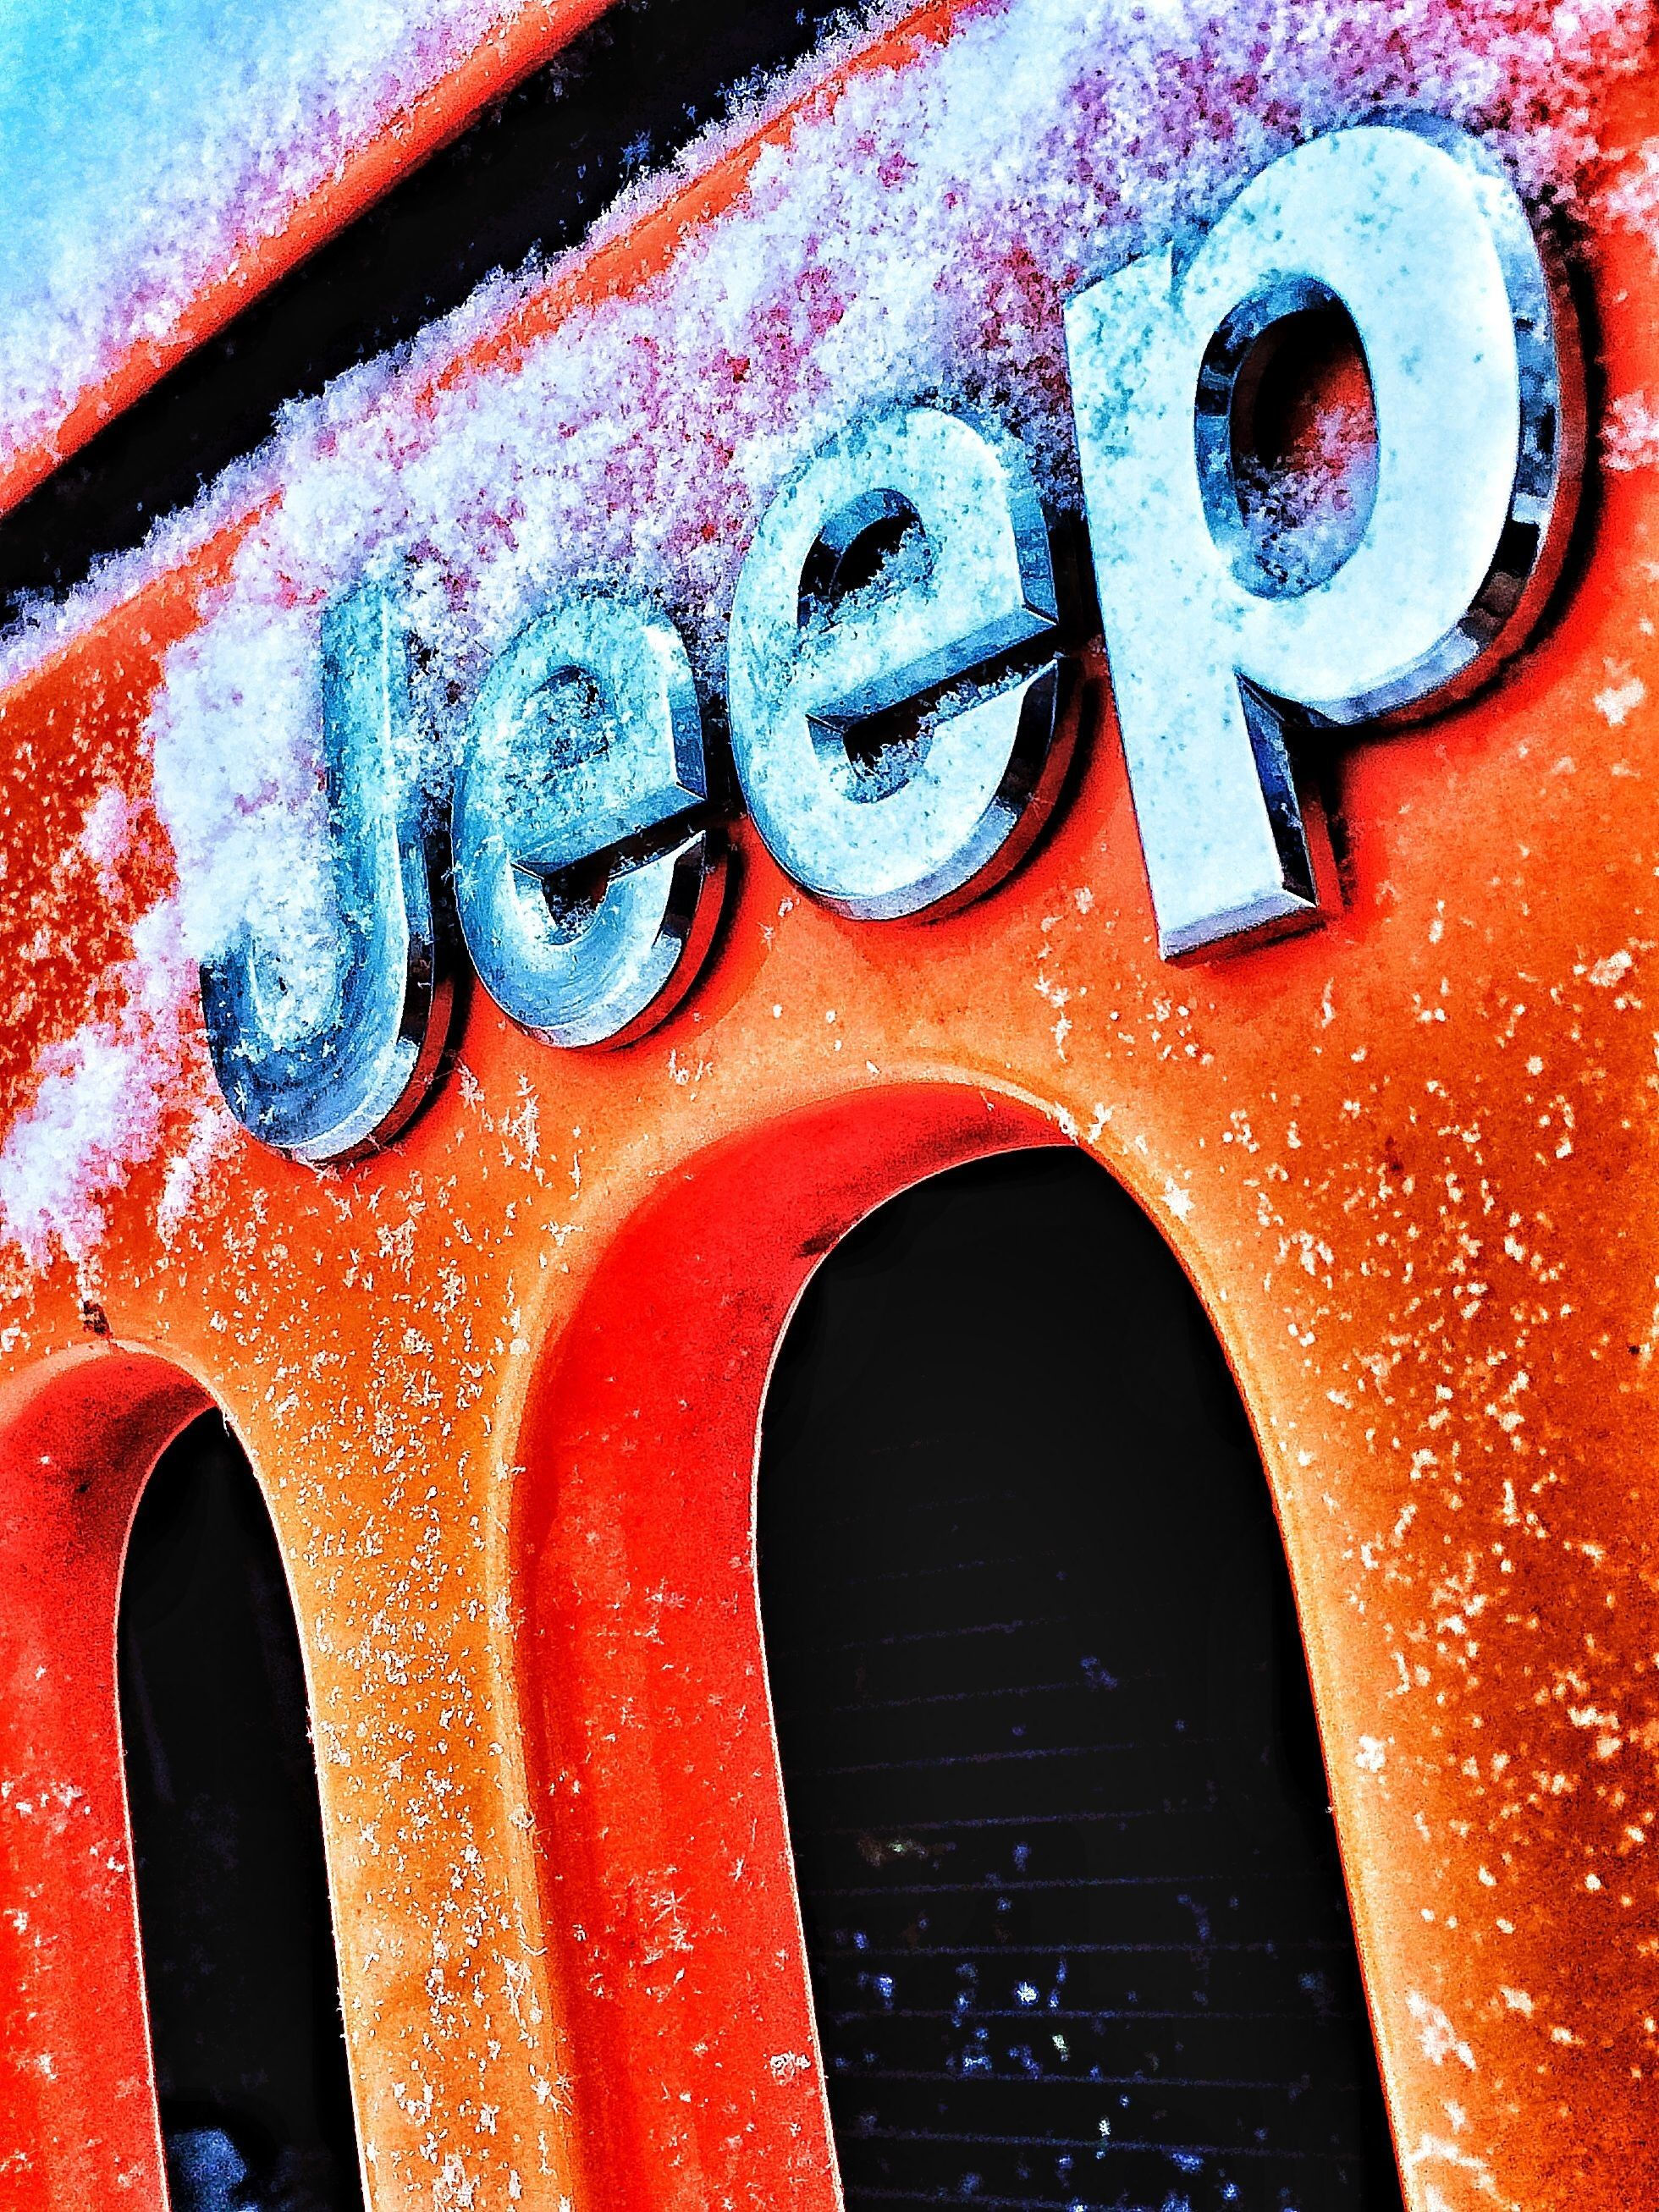 65 Jeep Iphone Wallpapers On Wallpaperplay Jeep Wallpaper Iphone Wallpaper Jeep